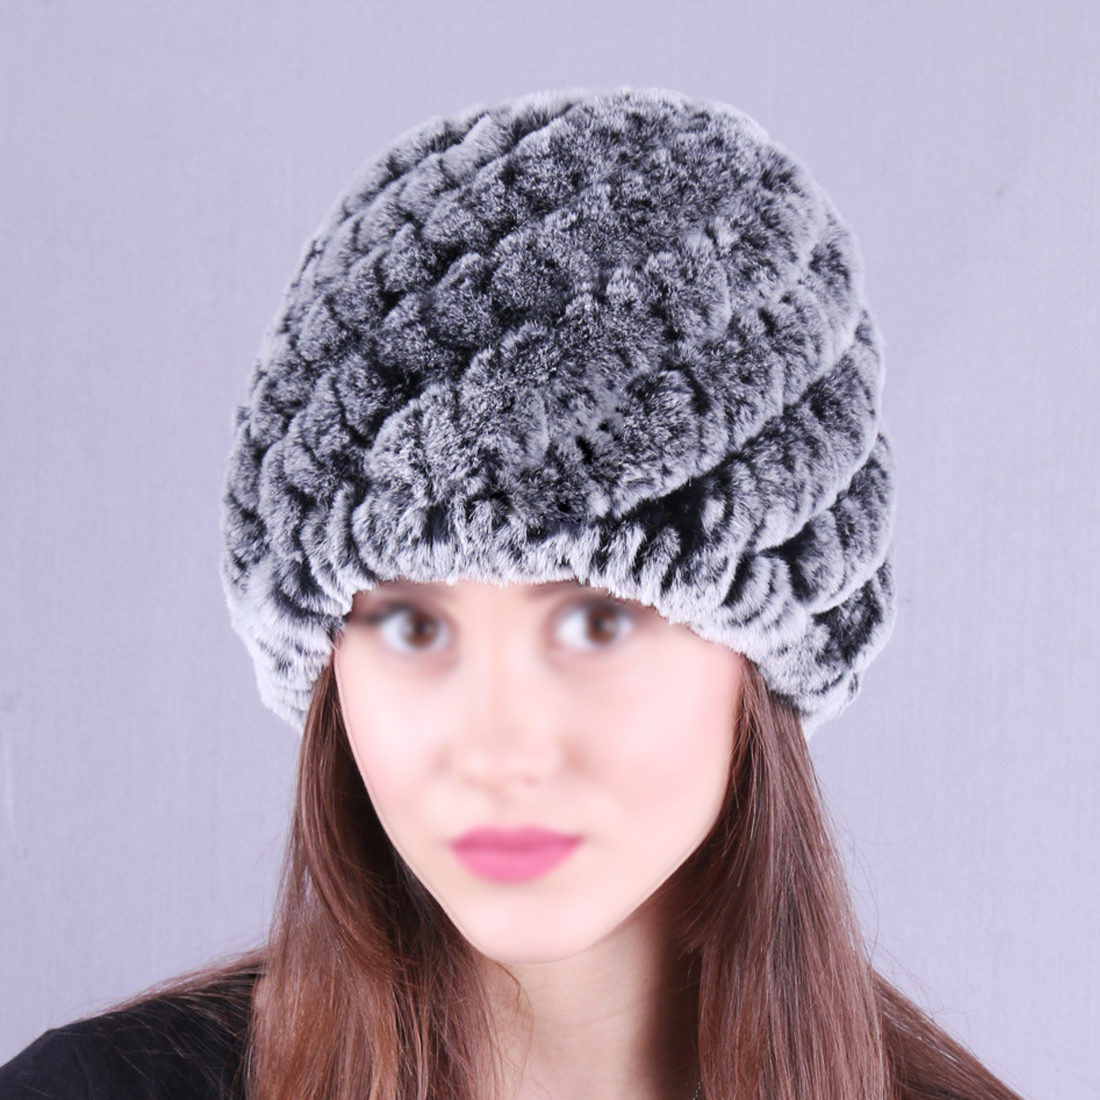 Women's Winter With Real Fur Female Cap Pineapple Hat Hold Ears Mink Fur Hat For Women Pineapple WARM Mink Fur Real Knitted Caps